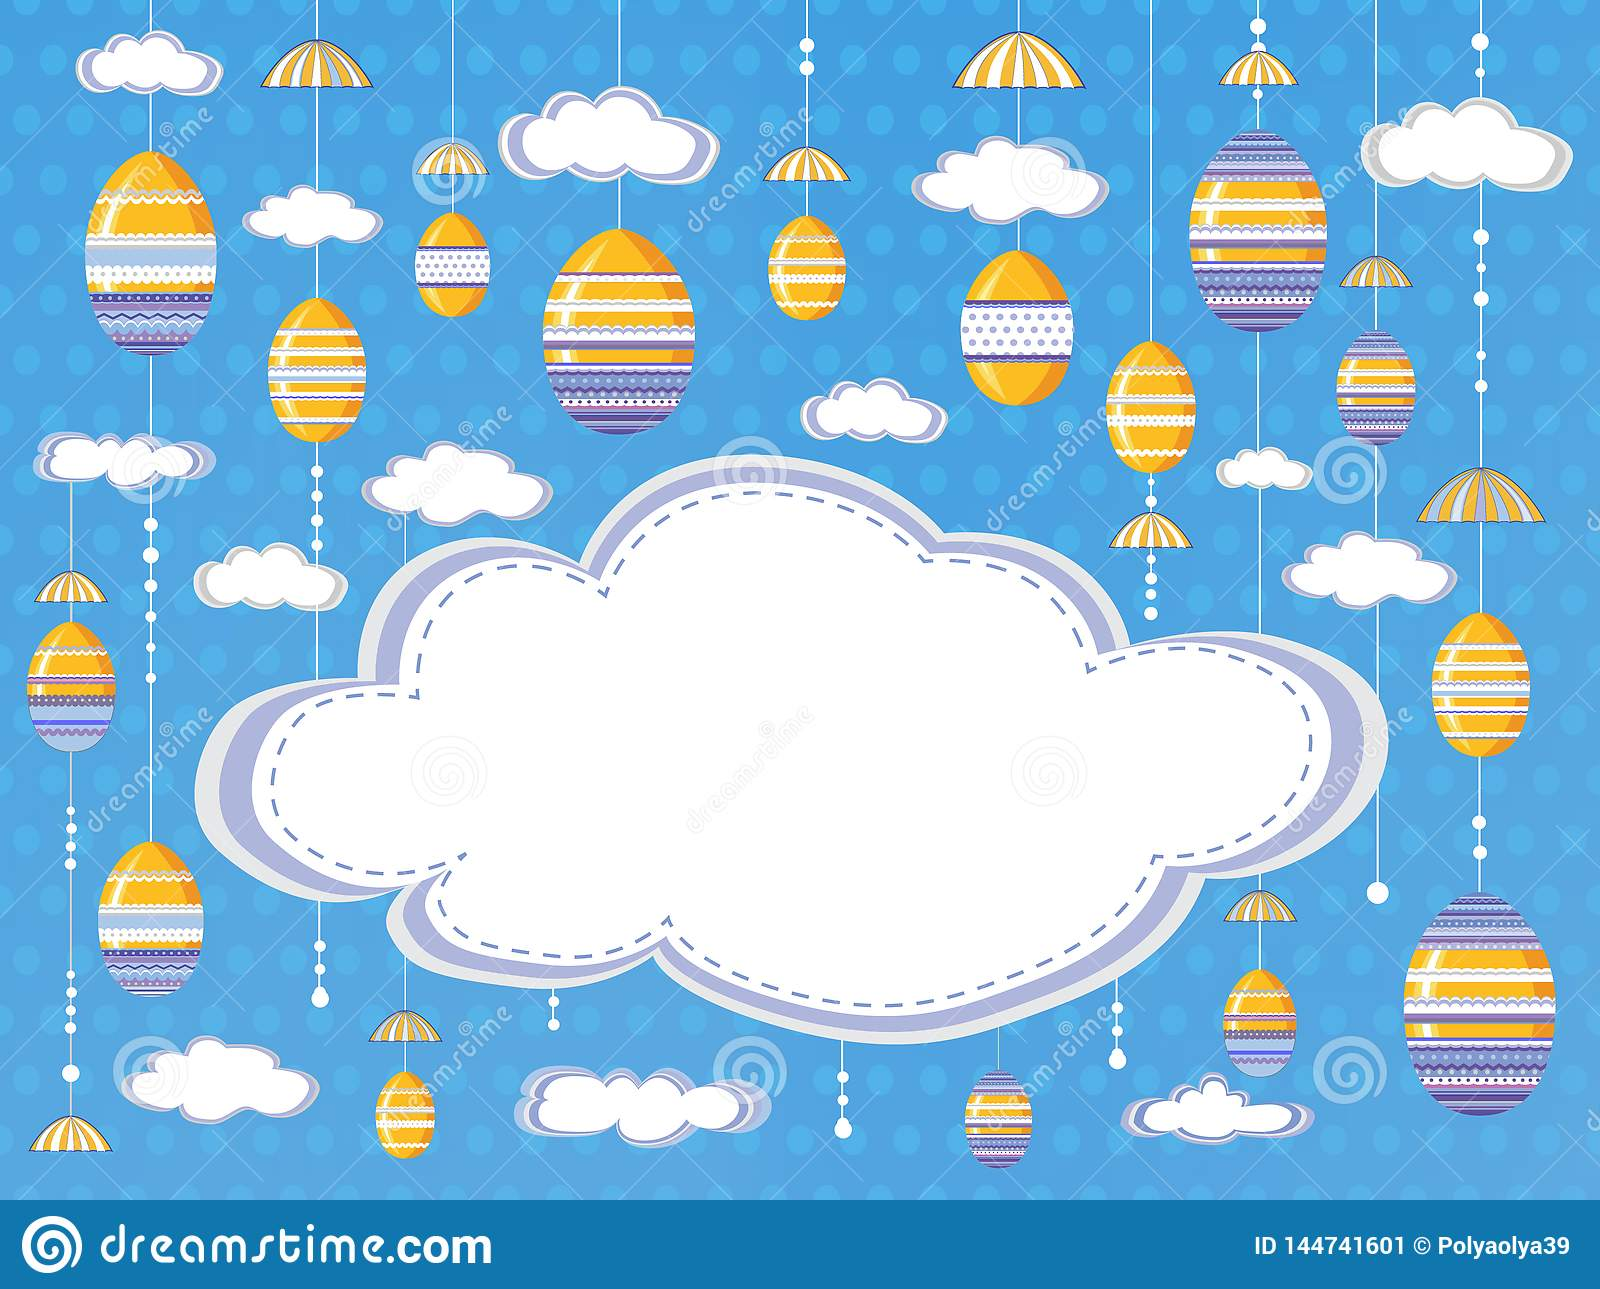 Easter festive background or poster with clouds and hanging decorative  eggs  on the sky background with empty space for text